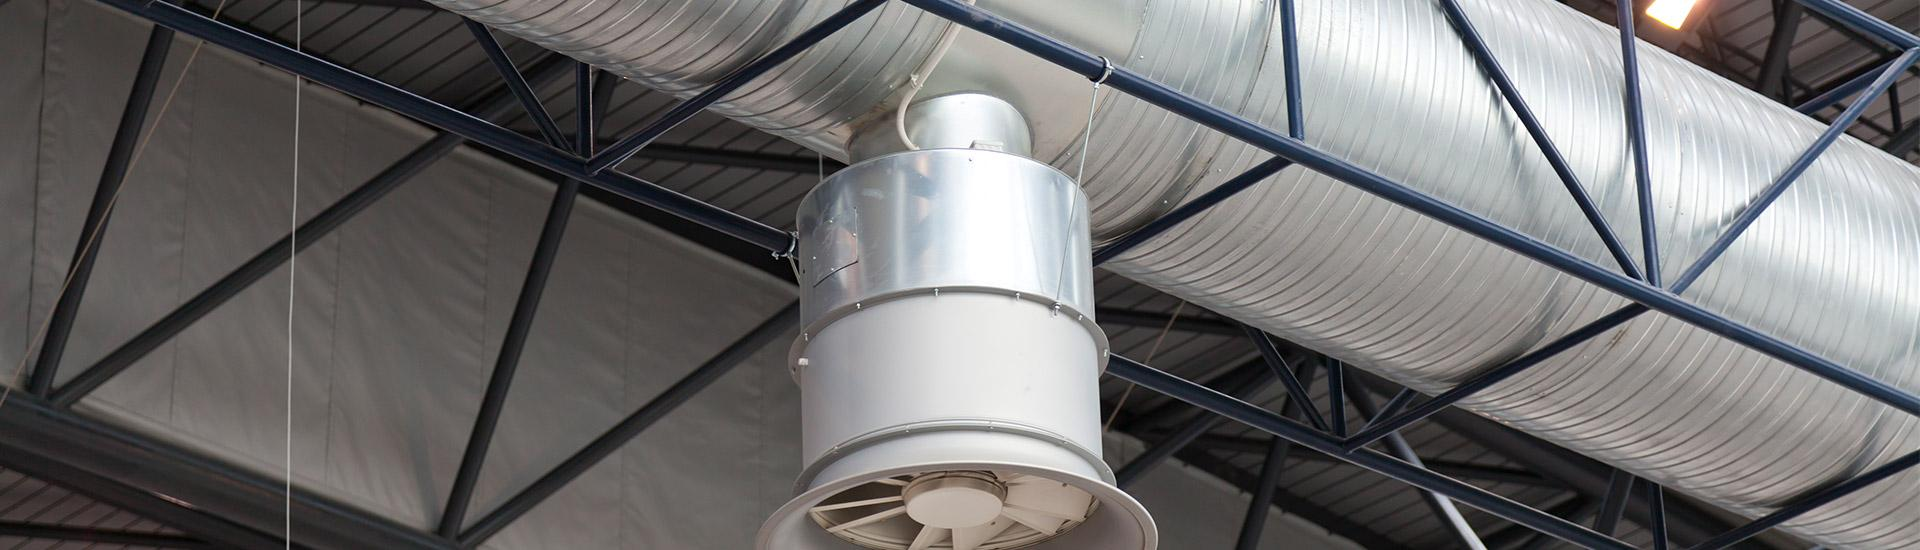 Commercial Air Duct Cleaning in New Orleans, Jackson, MS, Biloxi